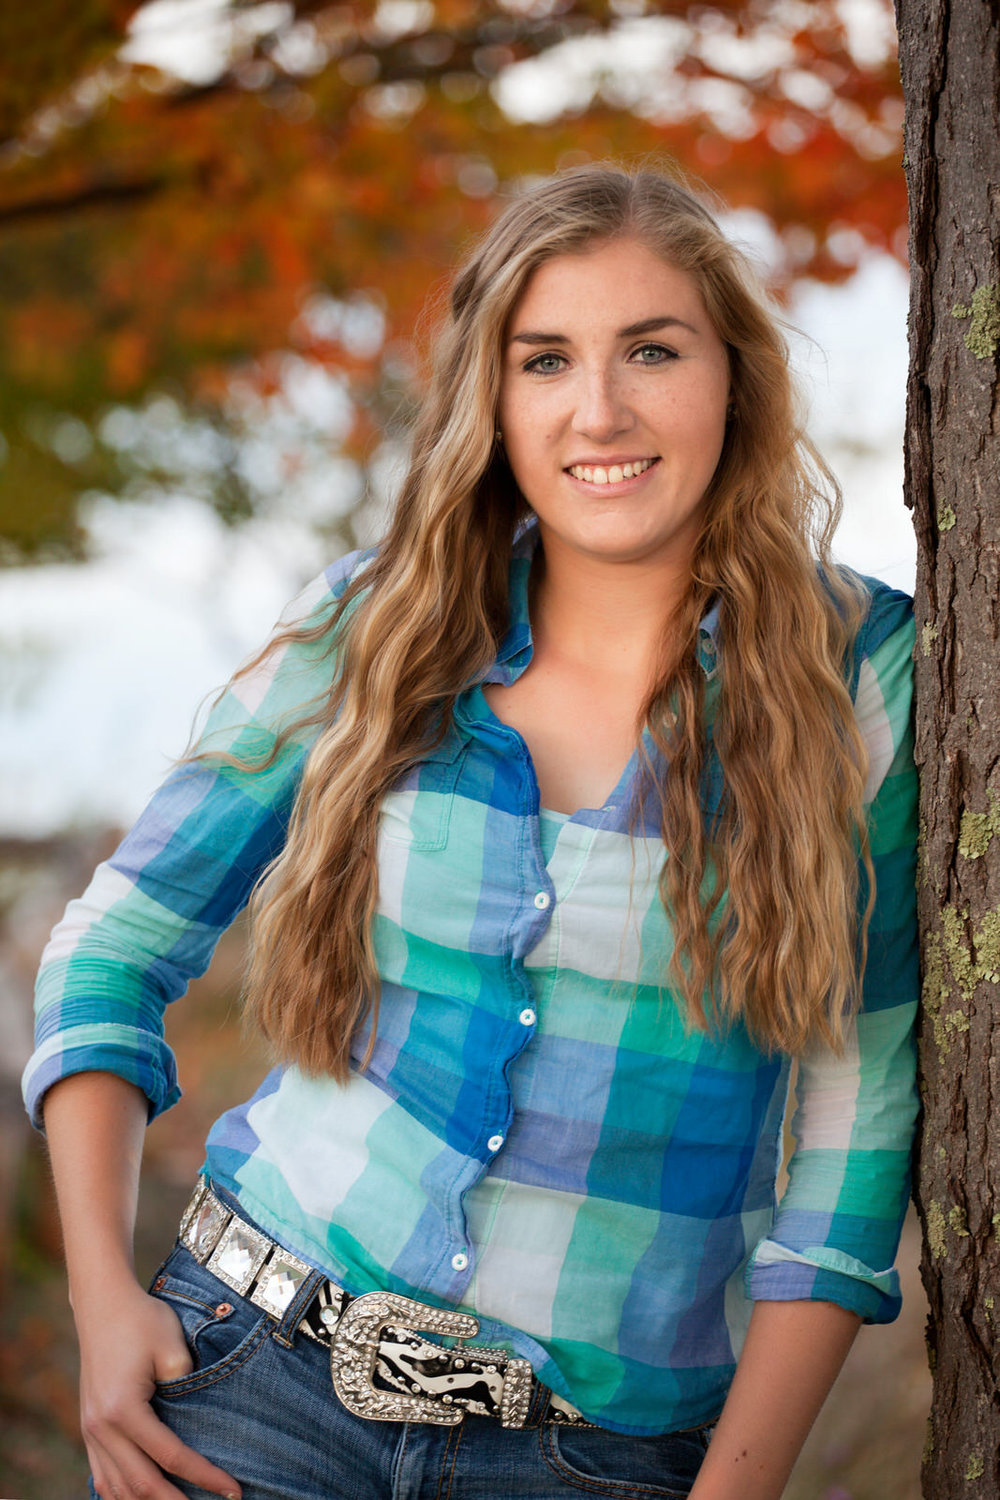 upper-peninsula-photographer-high-school-senior-marquette-ishpeming-negaunee-michigan-jackie-solomon-011.jpg